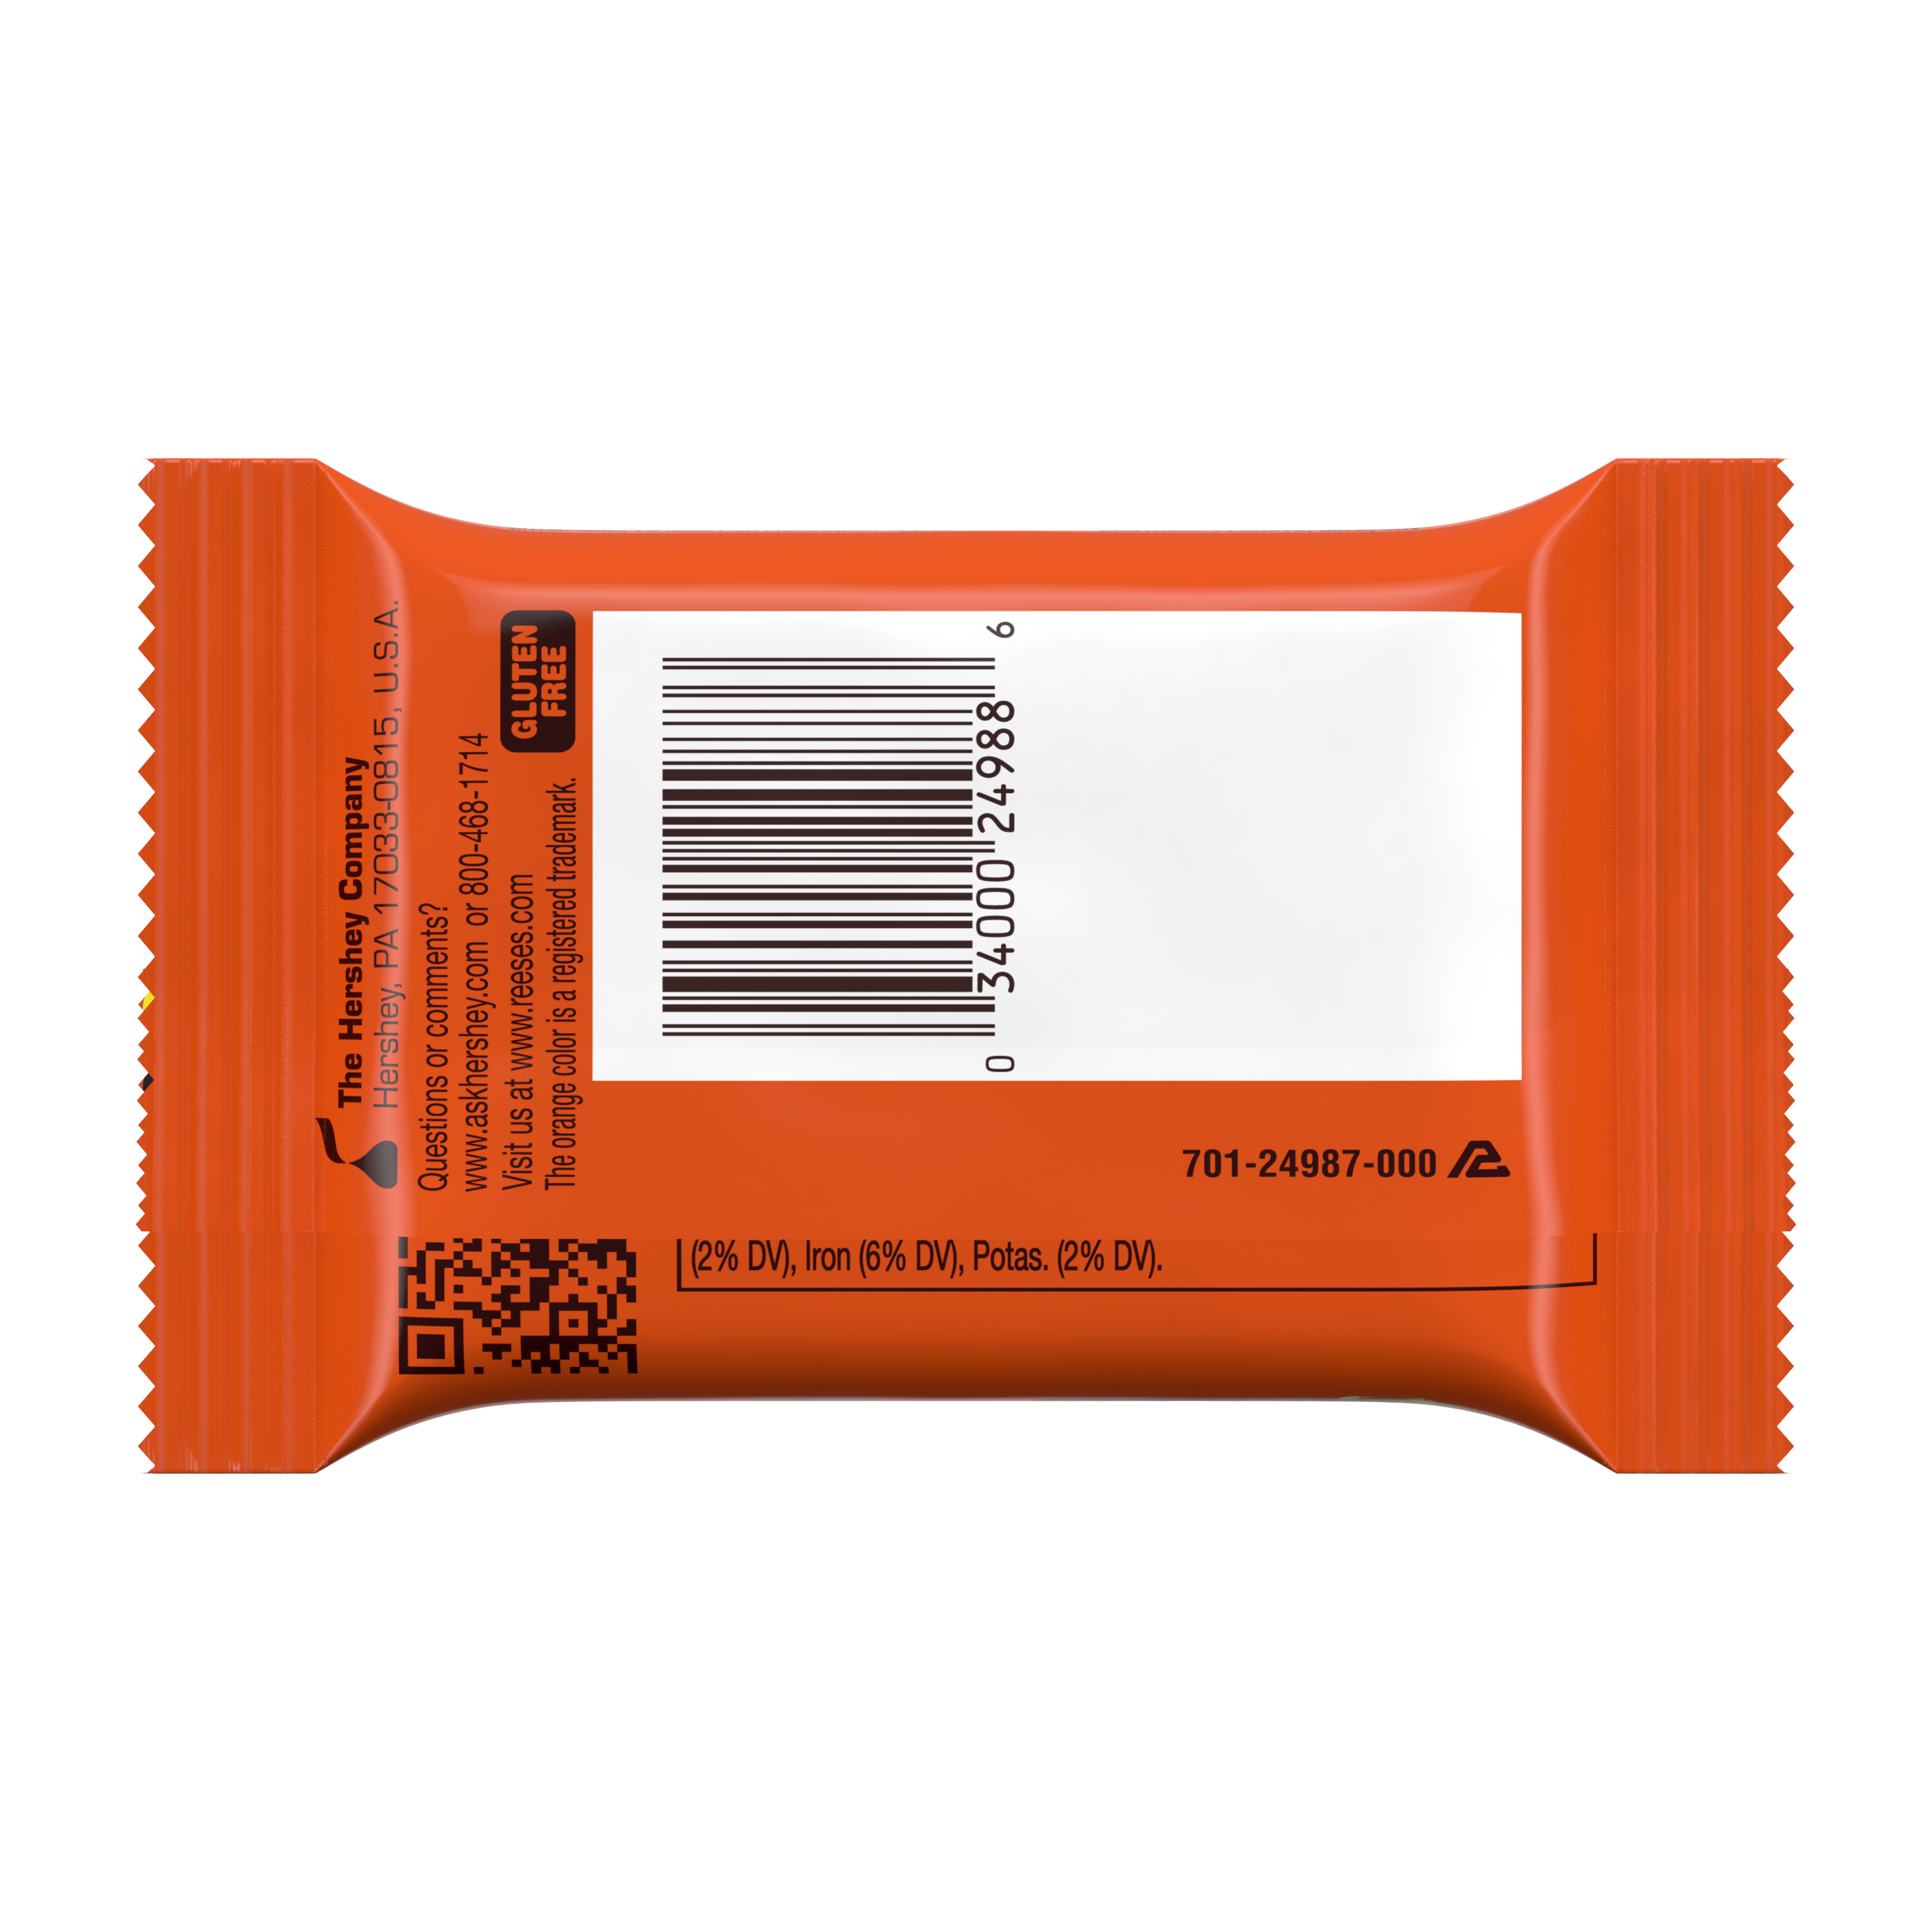 REESE'S Big Cup with Pretzels Peanut Butter Cup, 1.3 oz - Back of Package